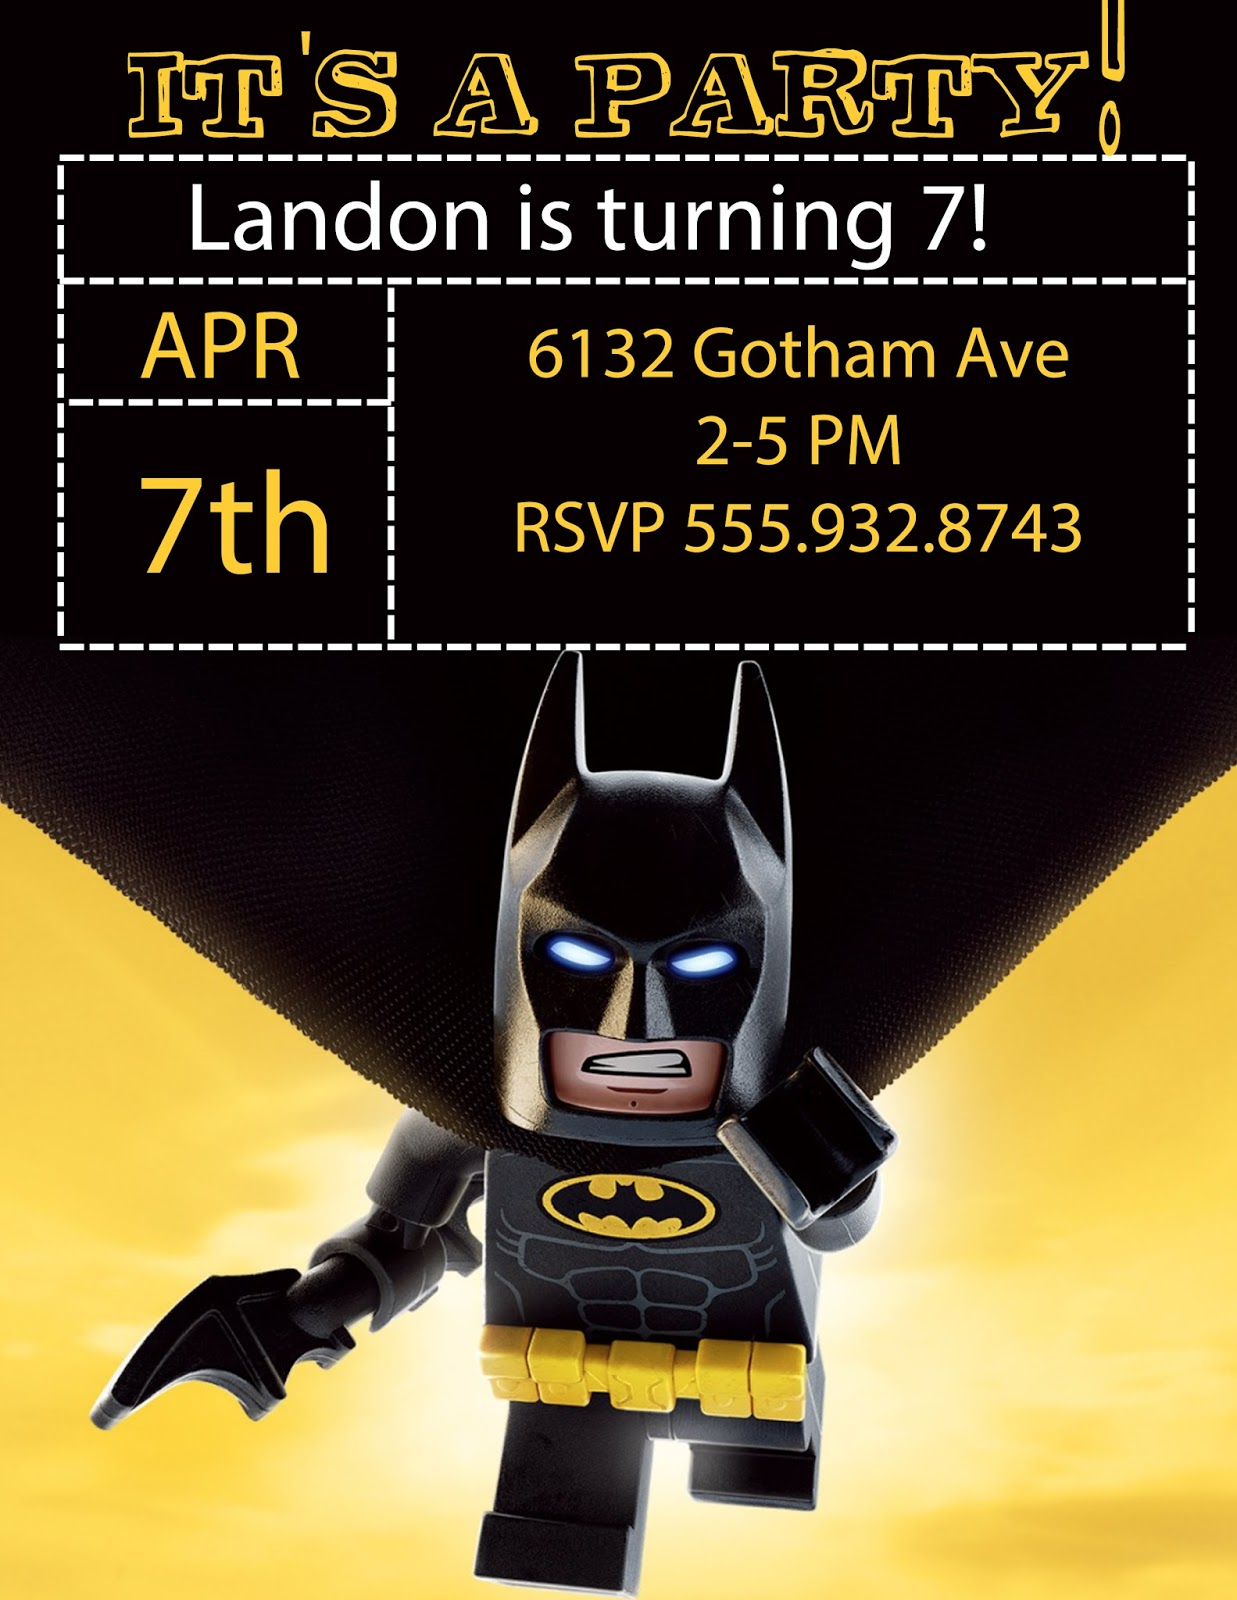 It is a graphic of Lego Batman Printable intended for diy